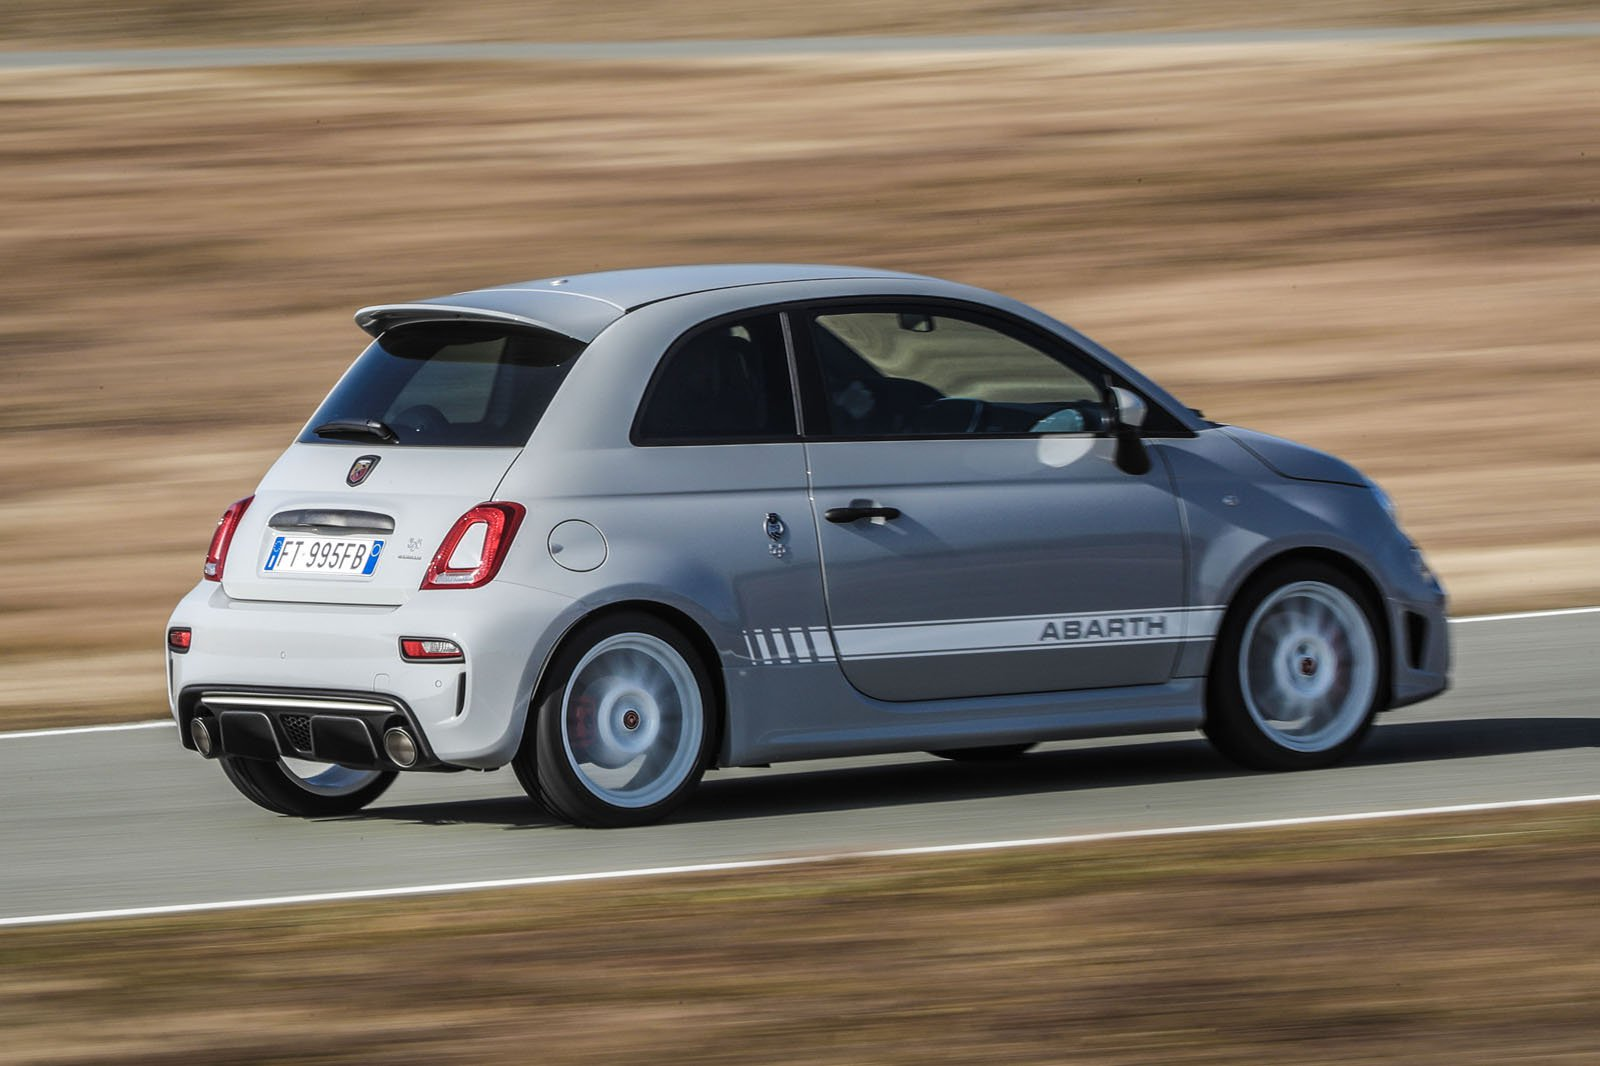 2019 Abarth 595 Esseesse review | What Car?